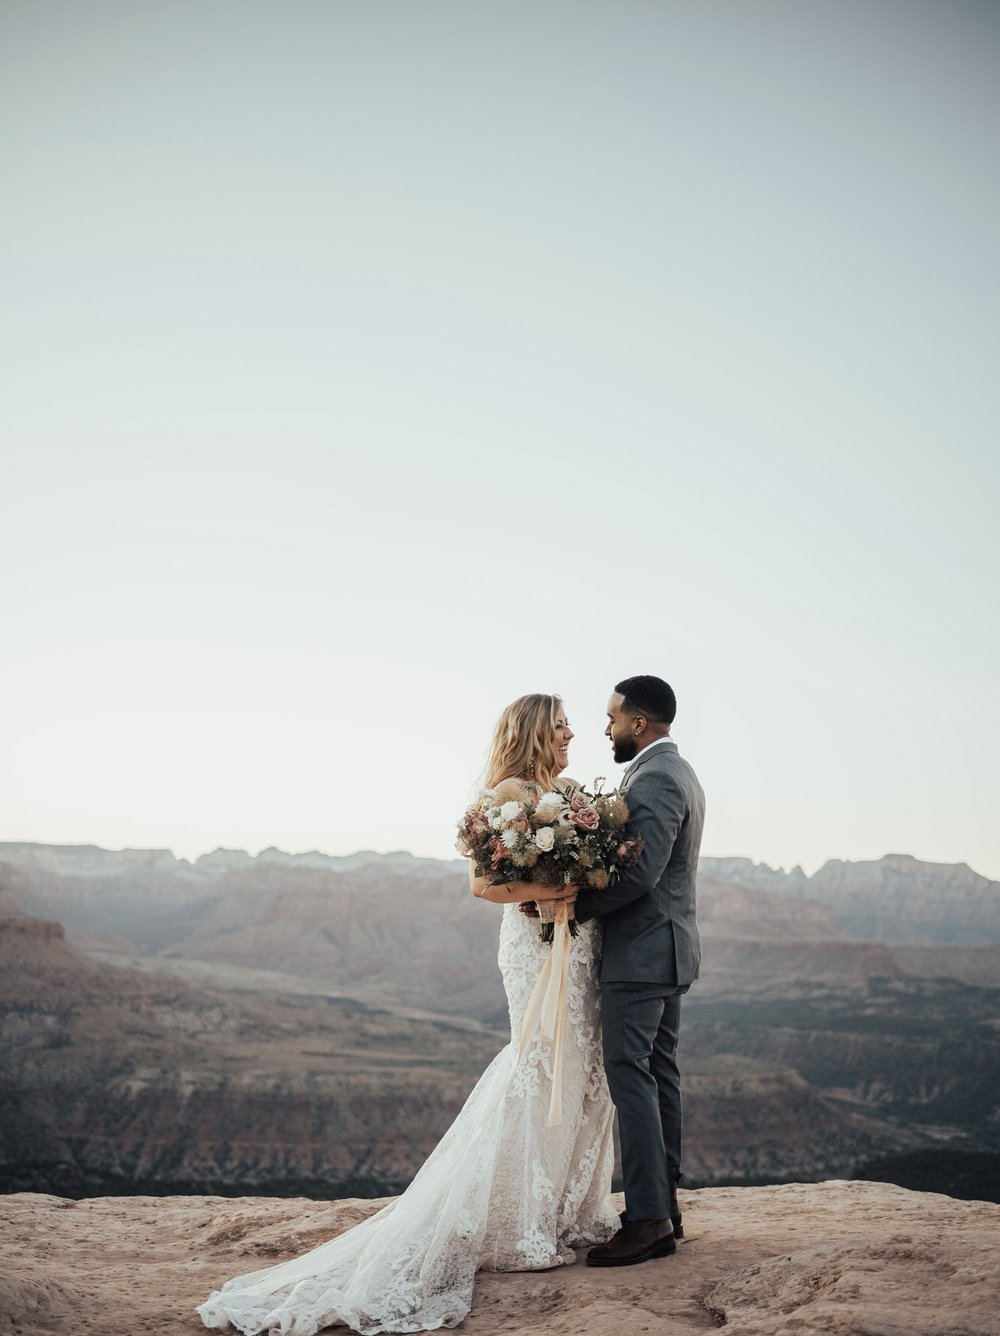 savannah-bridal-shop-ivory-and-beau-maggie-sottero-bride-tuscany-lynette-zion-national-park-wedding-utah-wedding-savannah-wedding-dresses-savannah-wedding-gowns-ashley-smith-photography-vanilla-and-the-bean-3.jpg